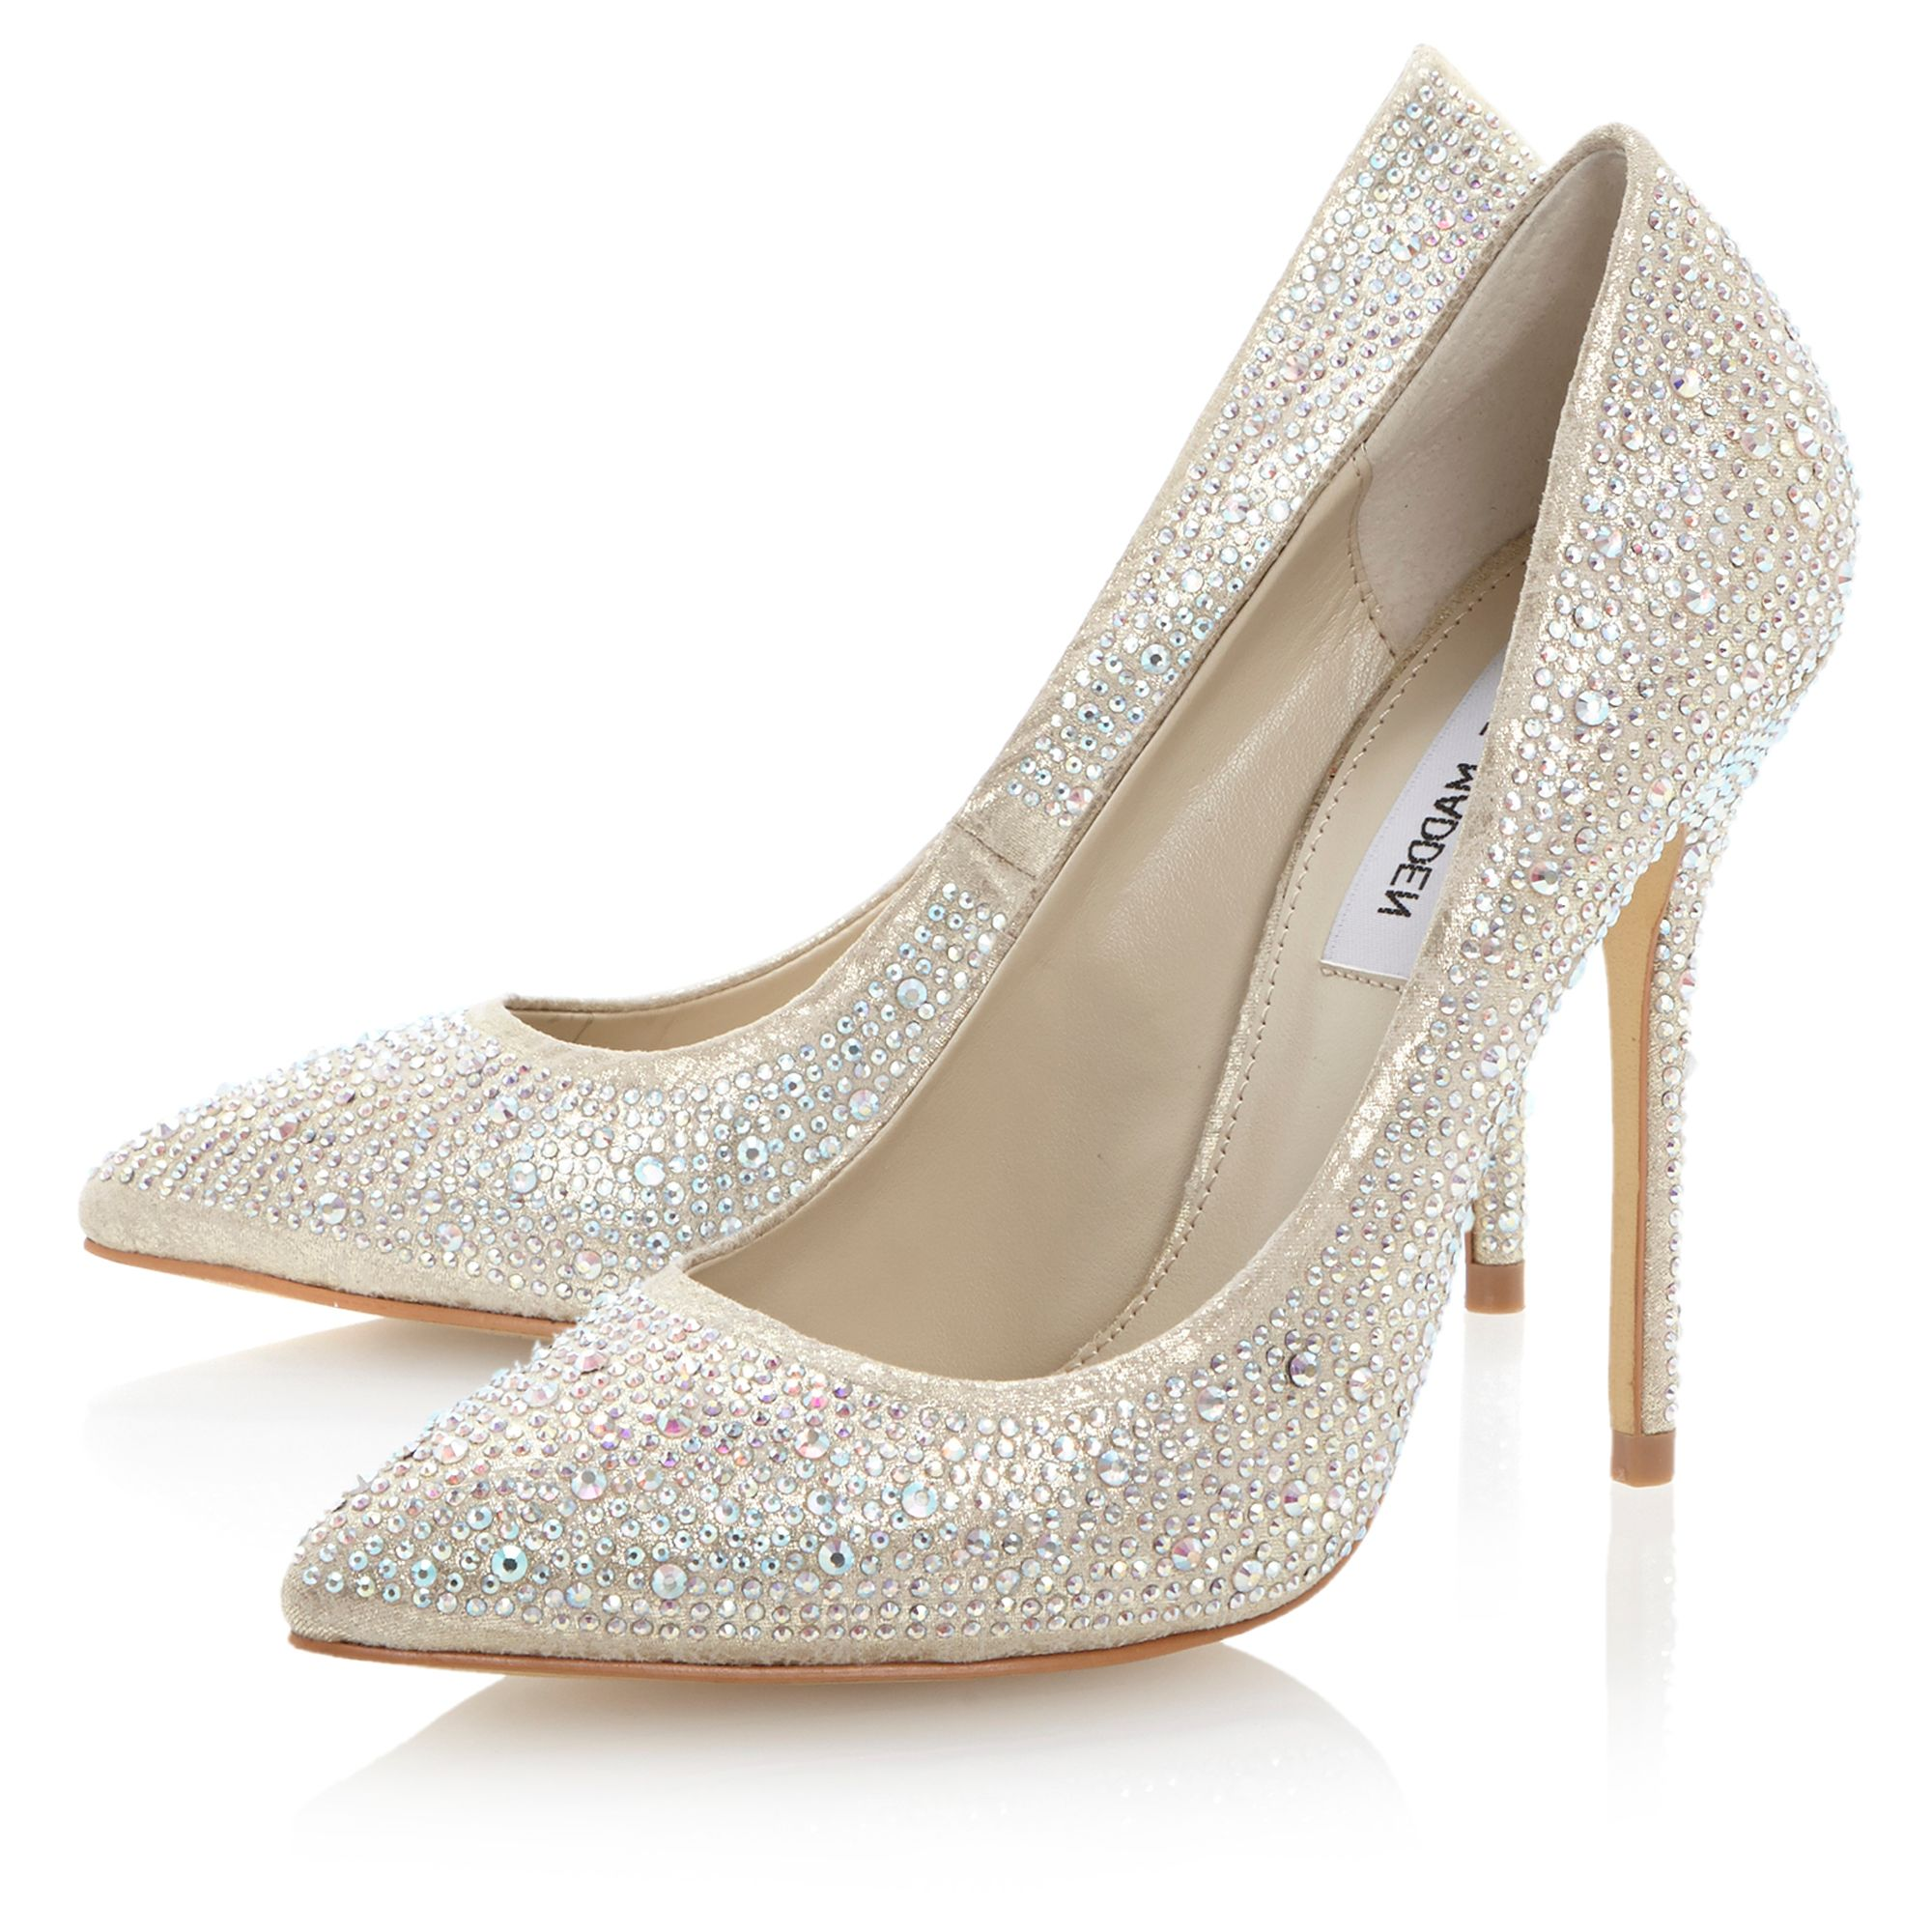 Lenona-all over diamante court shoes